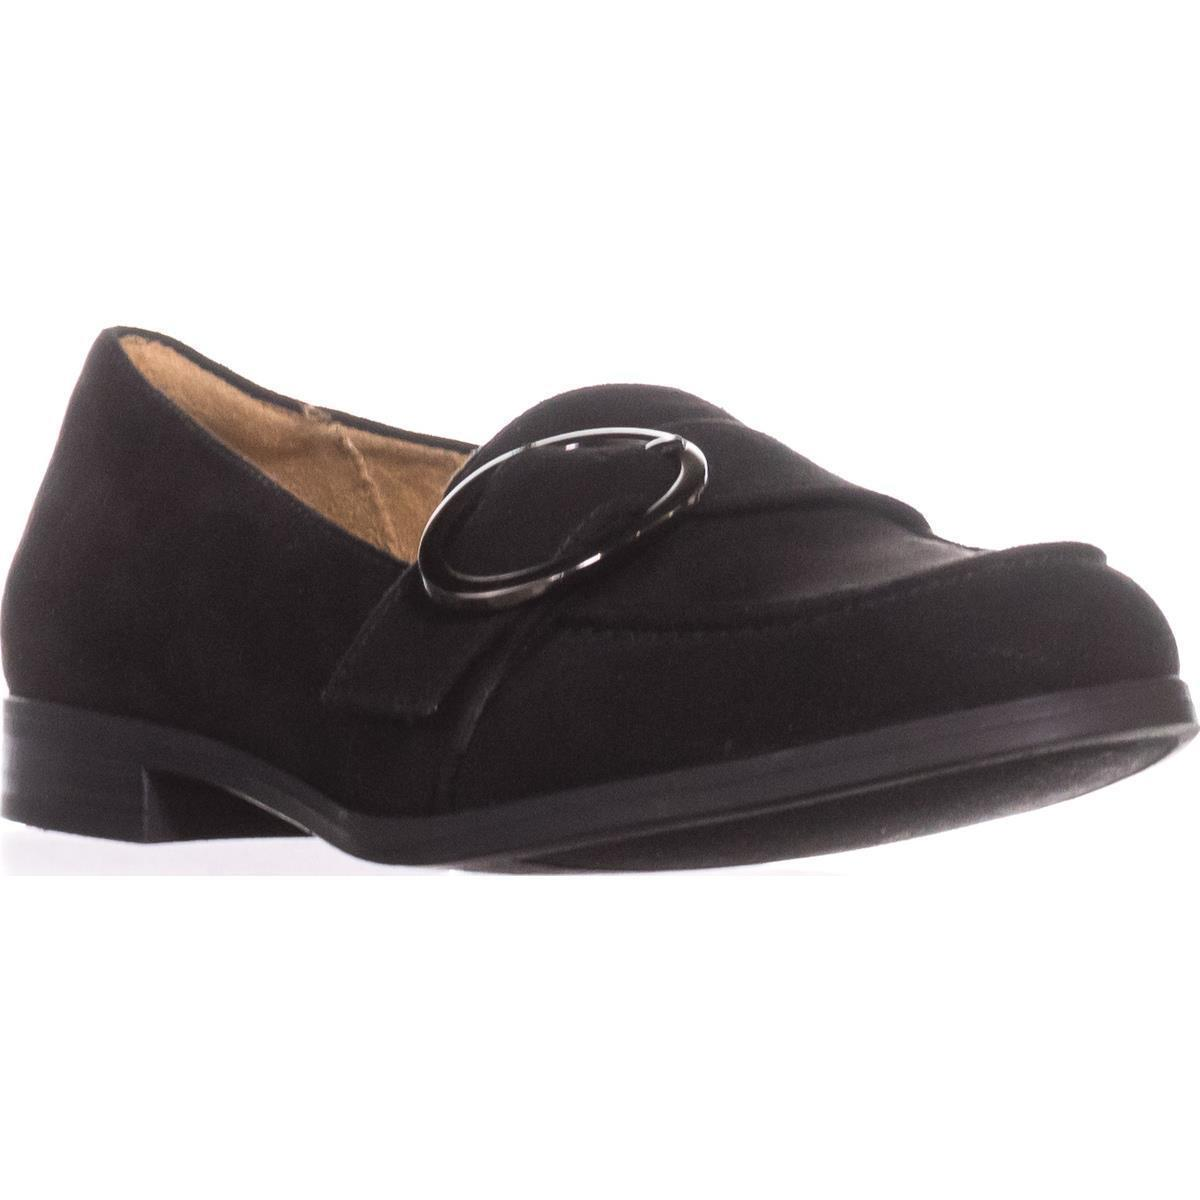 Womens Naturalizer Mina Flat Comfort Loafers, Black Fabric by Naturalizer